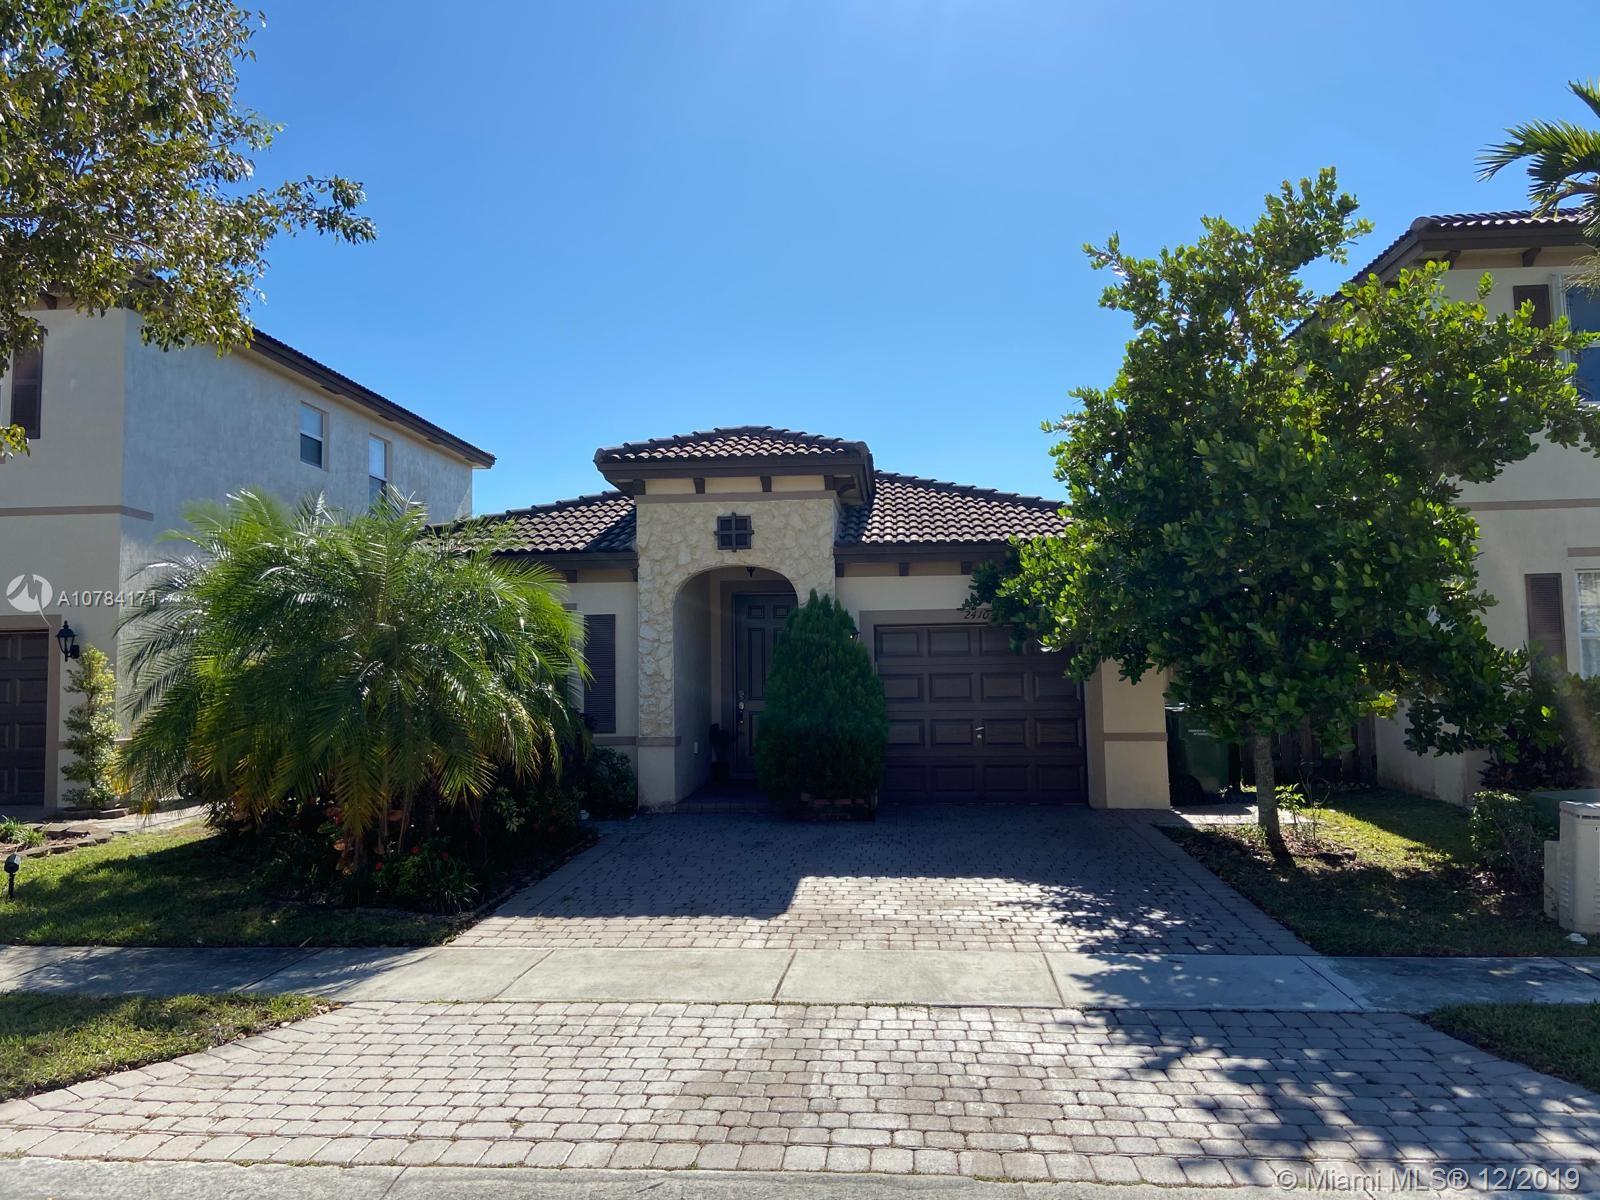 2410 NE 4th, Homestead, FL 33033 - Homestead, FL real estate listing